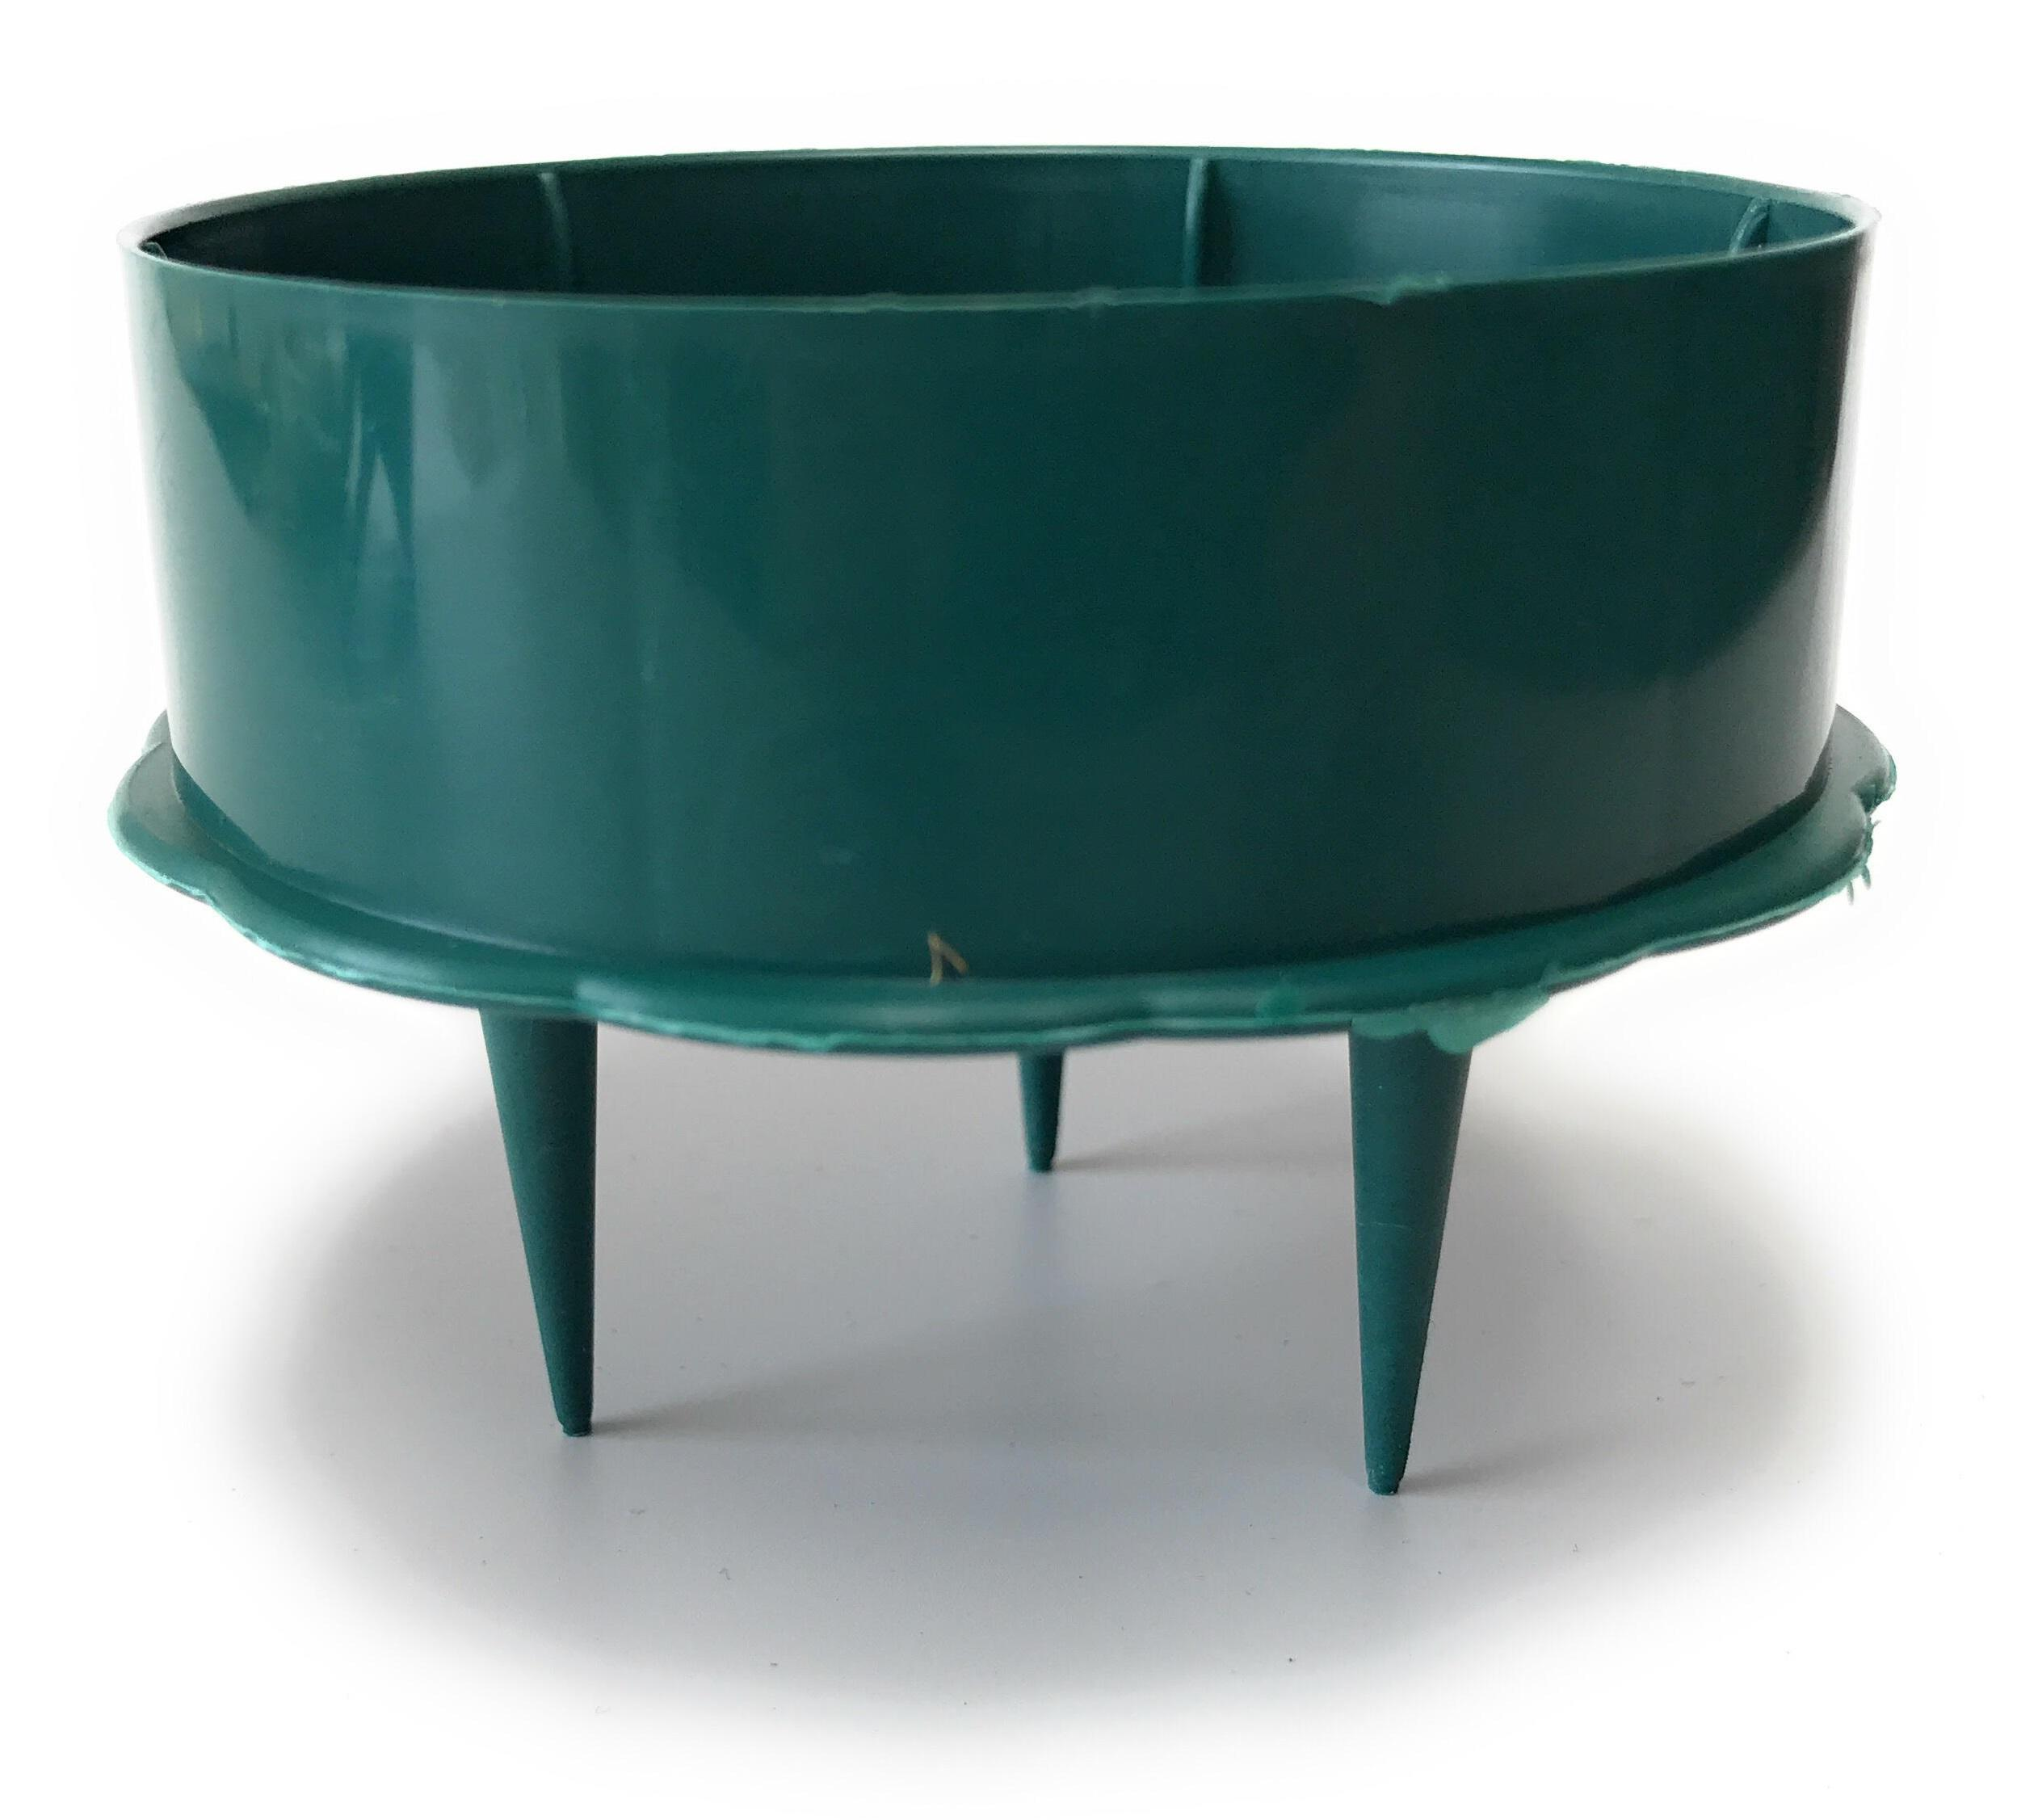 "3"" candle holder green for florist foam"